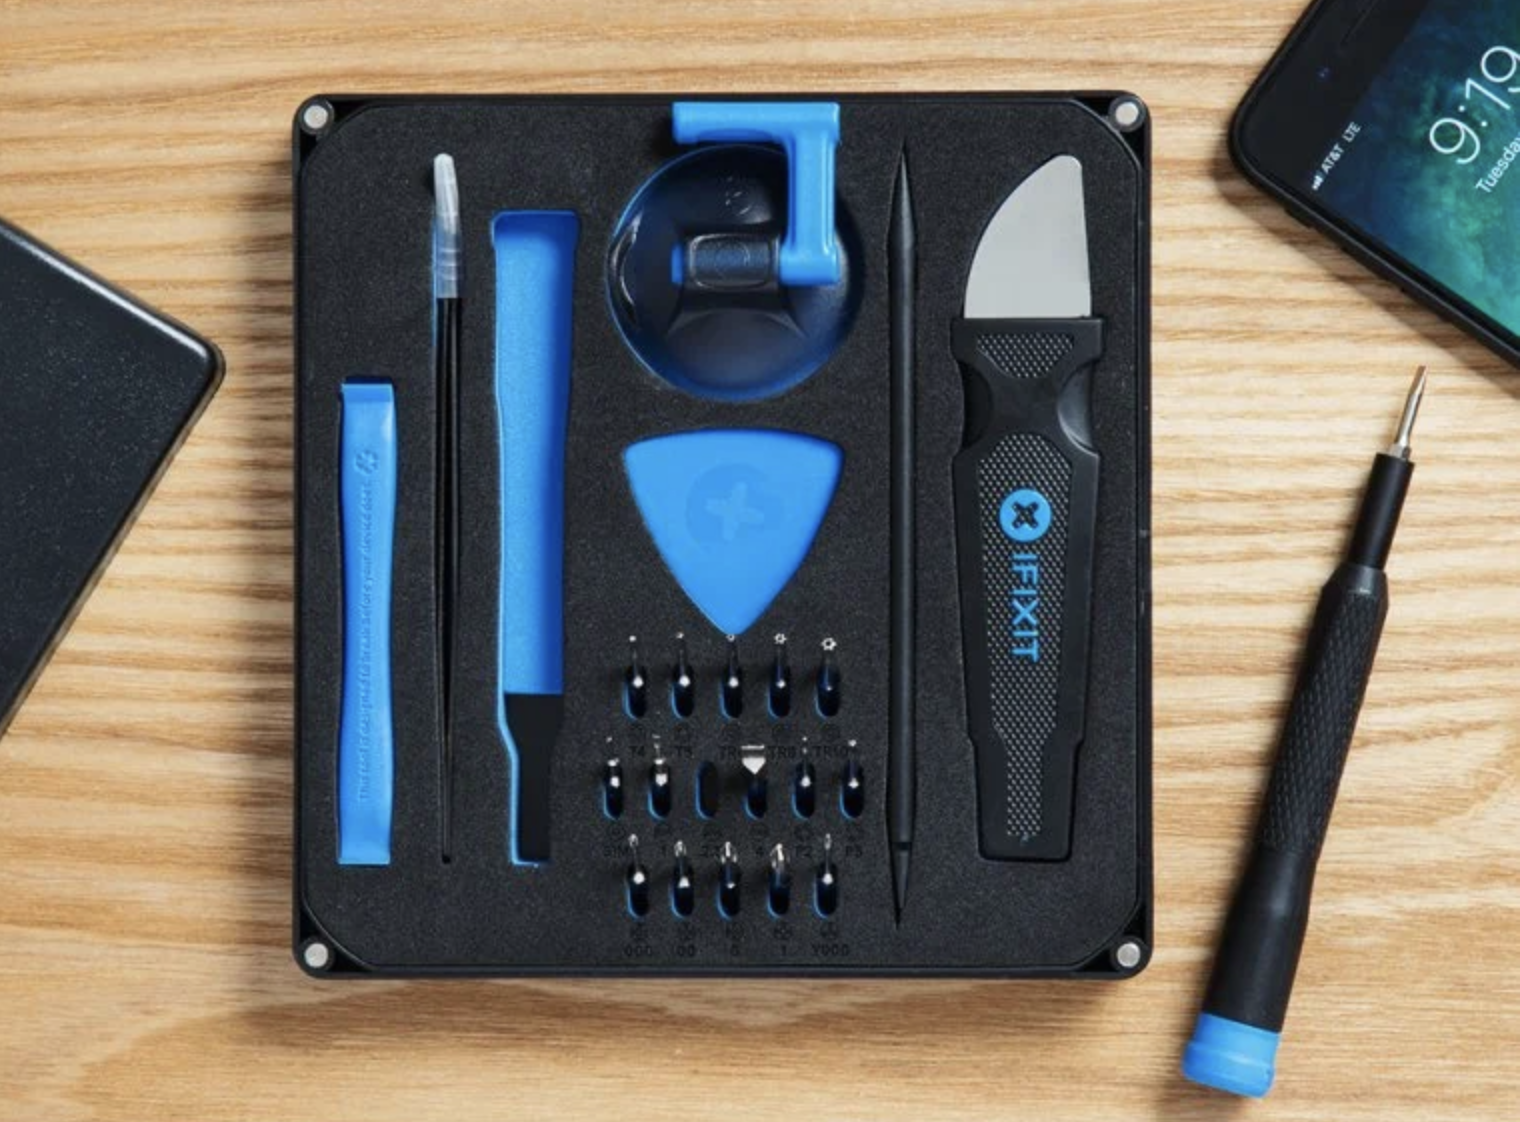 The tool kit with black and blue tinted tools